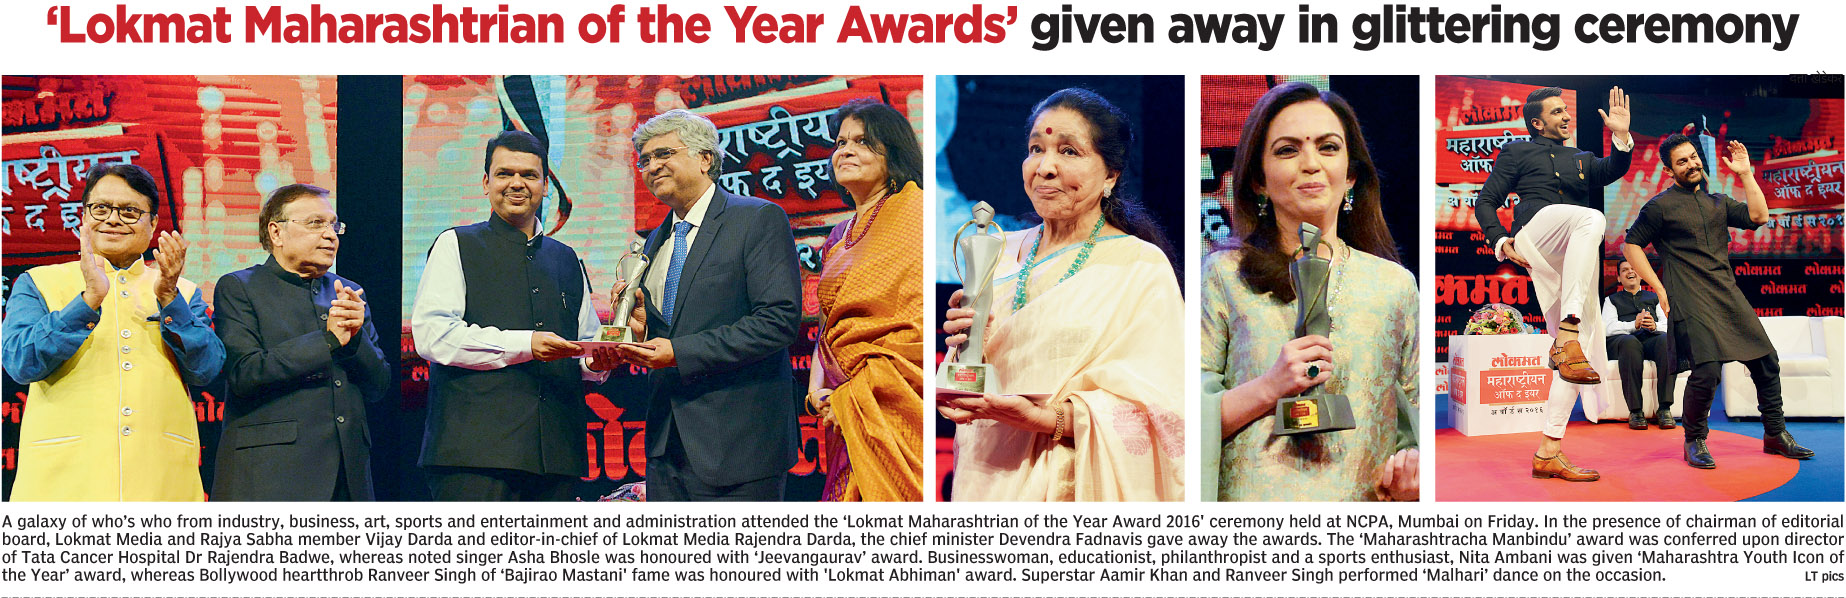 'Lokmat Maharashtrian of the Year Awards' given away in glittering ceremony